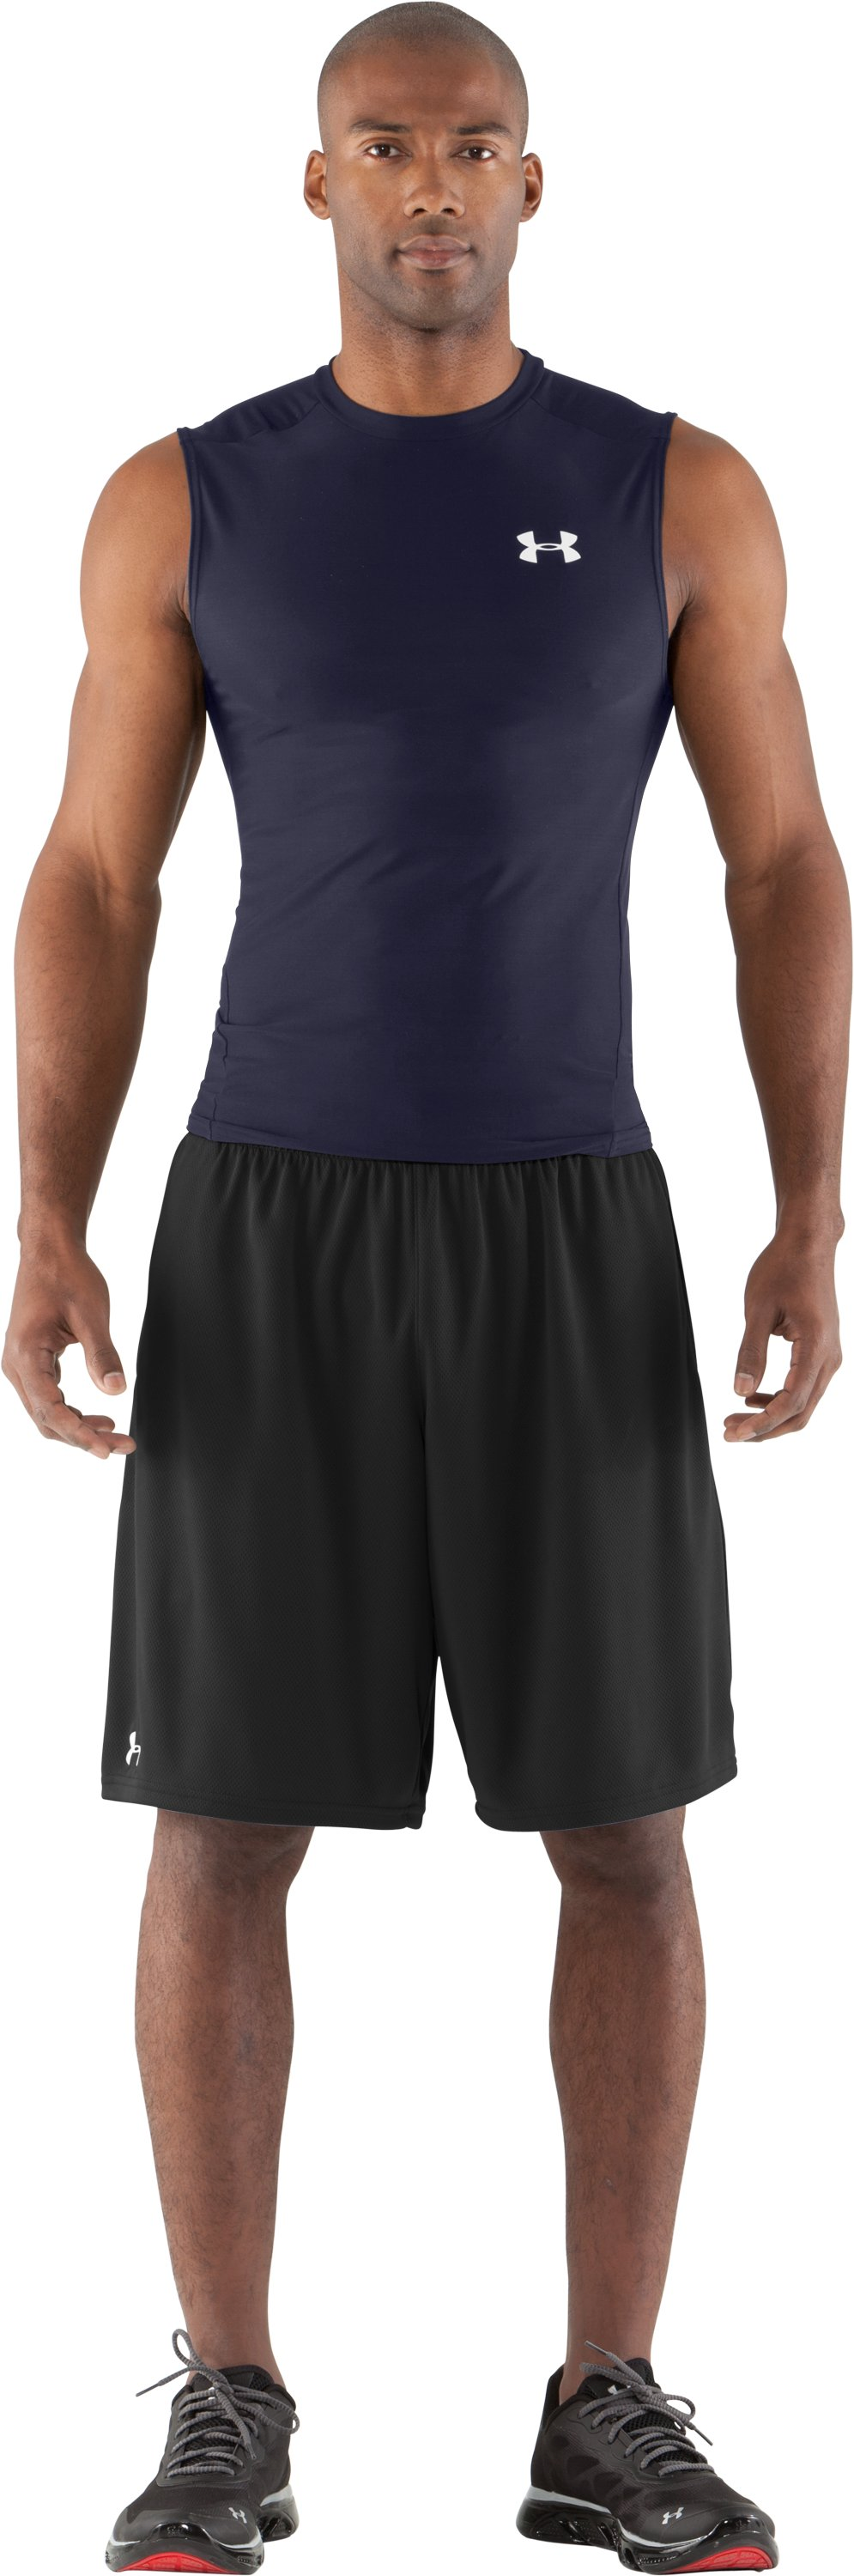 Men's HeatGear® Compression Sleeveless T-Shirt, Midnight Navy